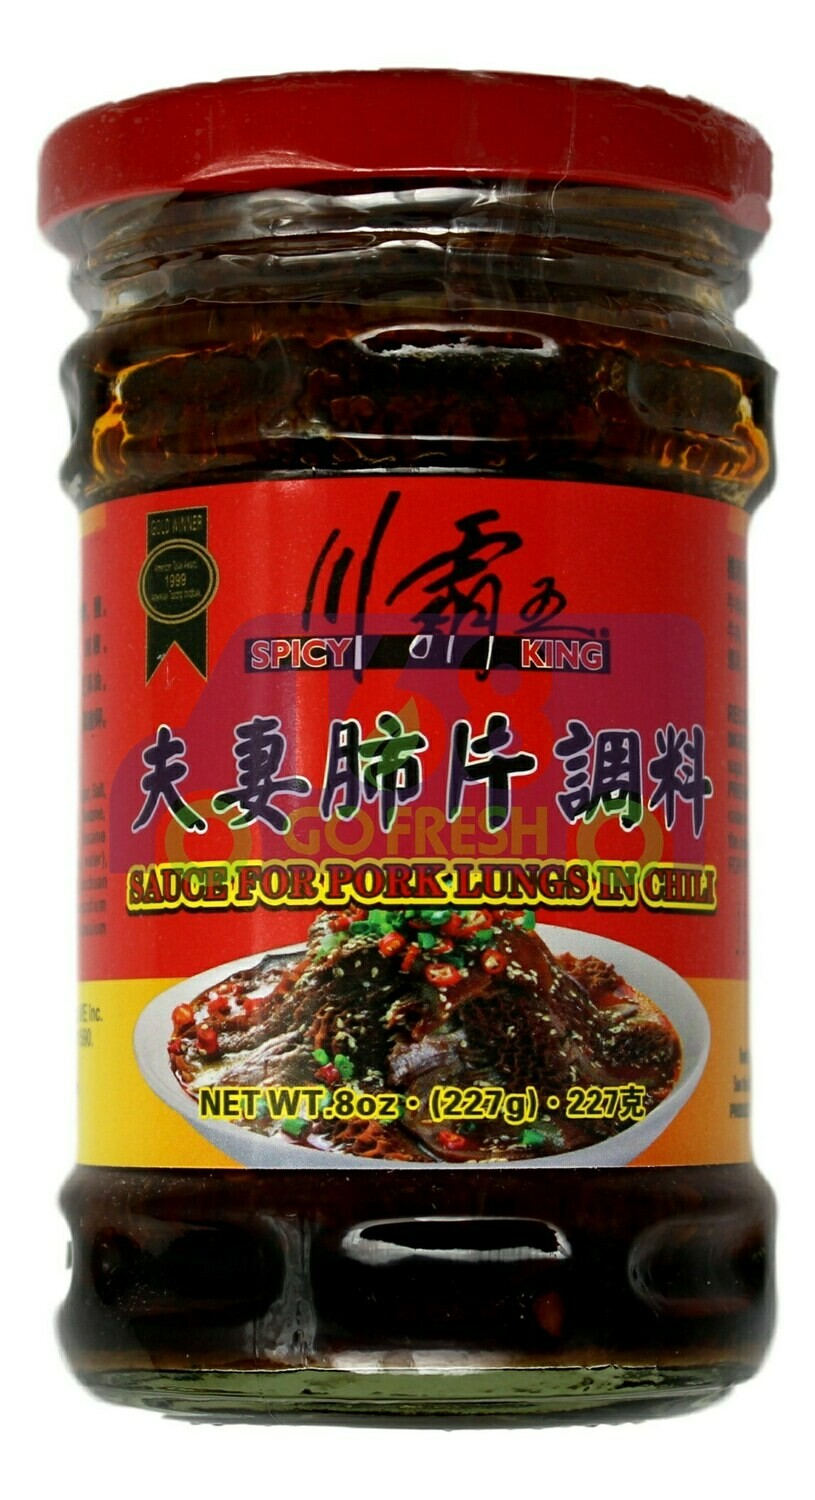 SPICY KING SAUCE FOR PORK LUNG IN CHILI 川霸王 夫妻肺片调料(8OZ)